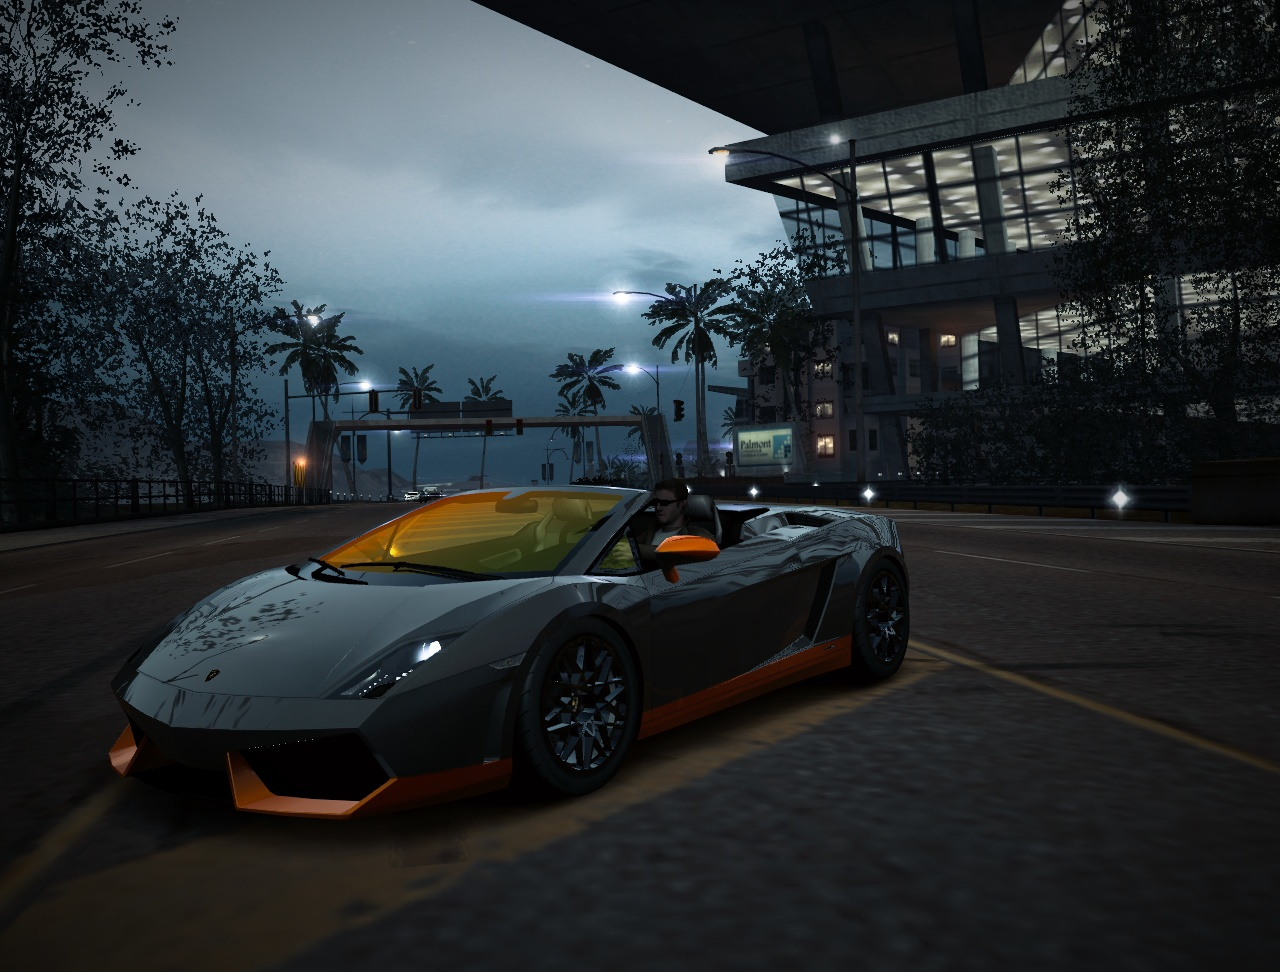 nfs world lamborghini gallardo spyder by al3xand3rd91 on deviantart. Black Bedroom Furniture Sets. Home Design Ideas